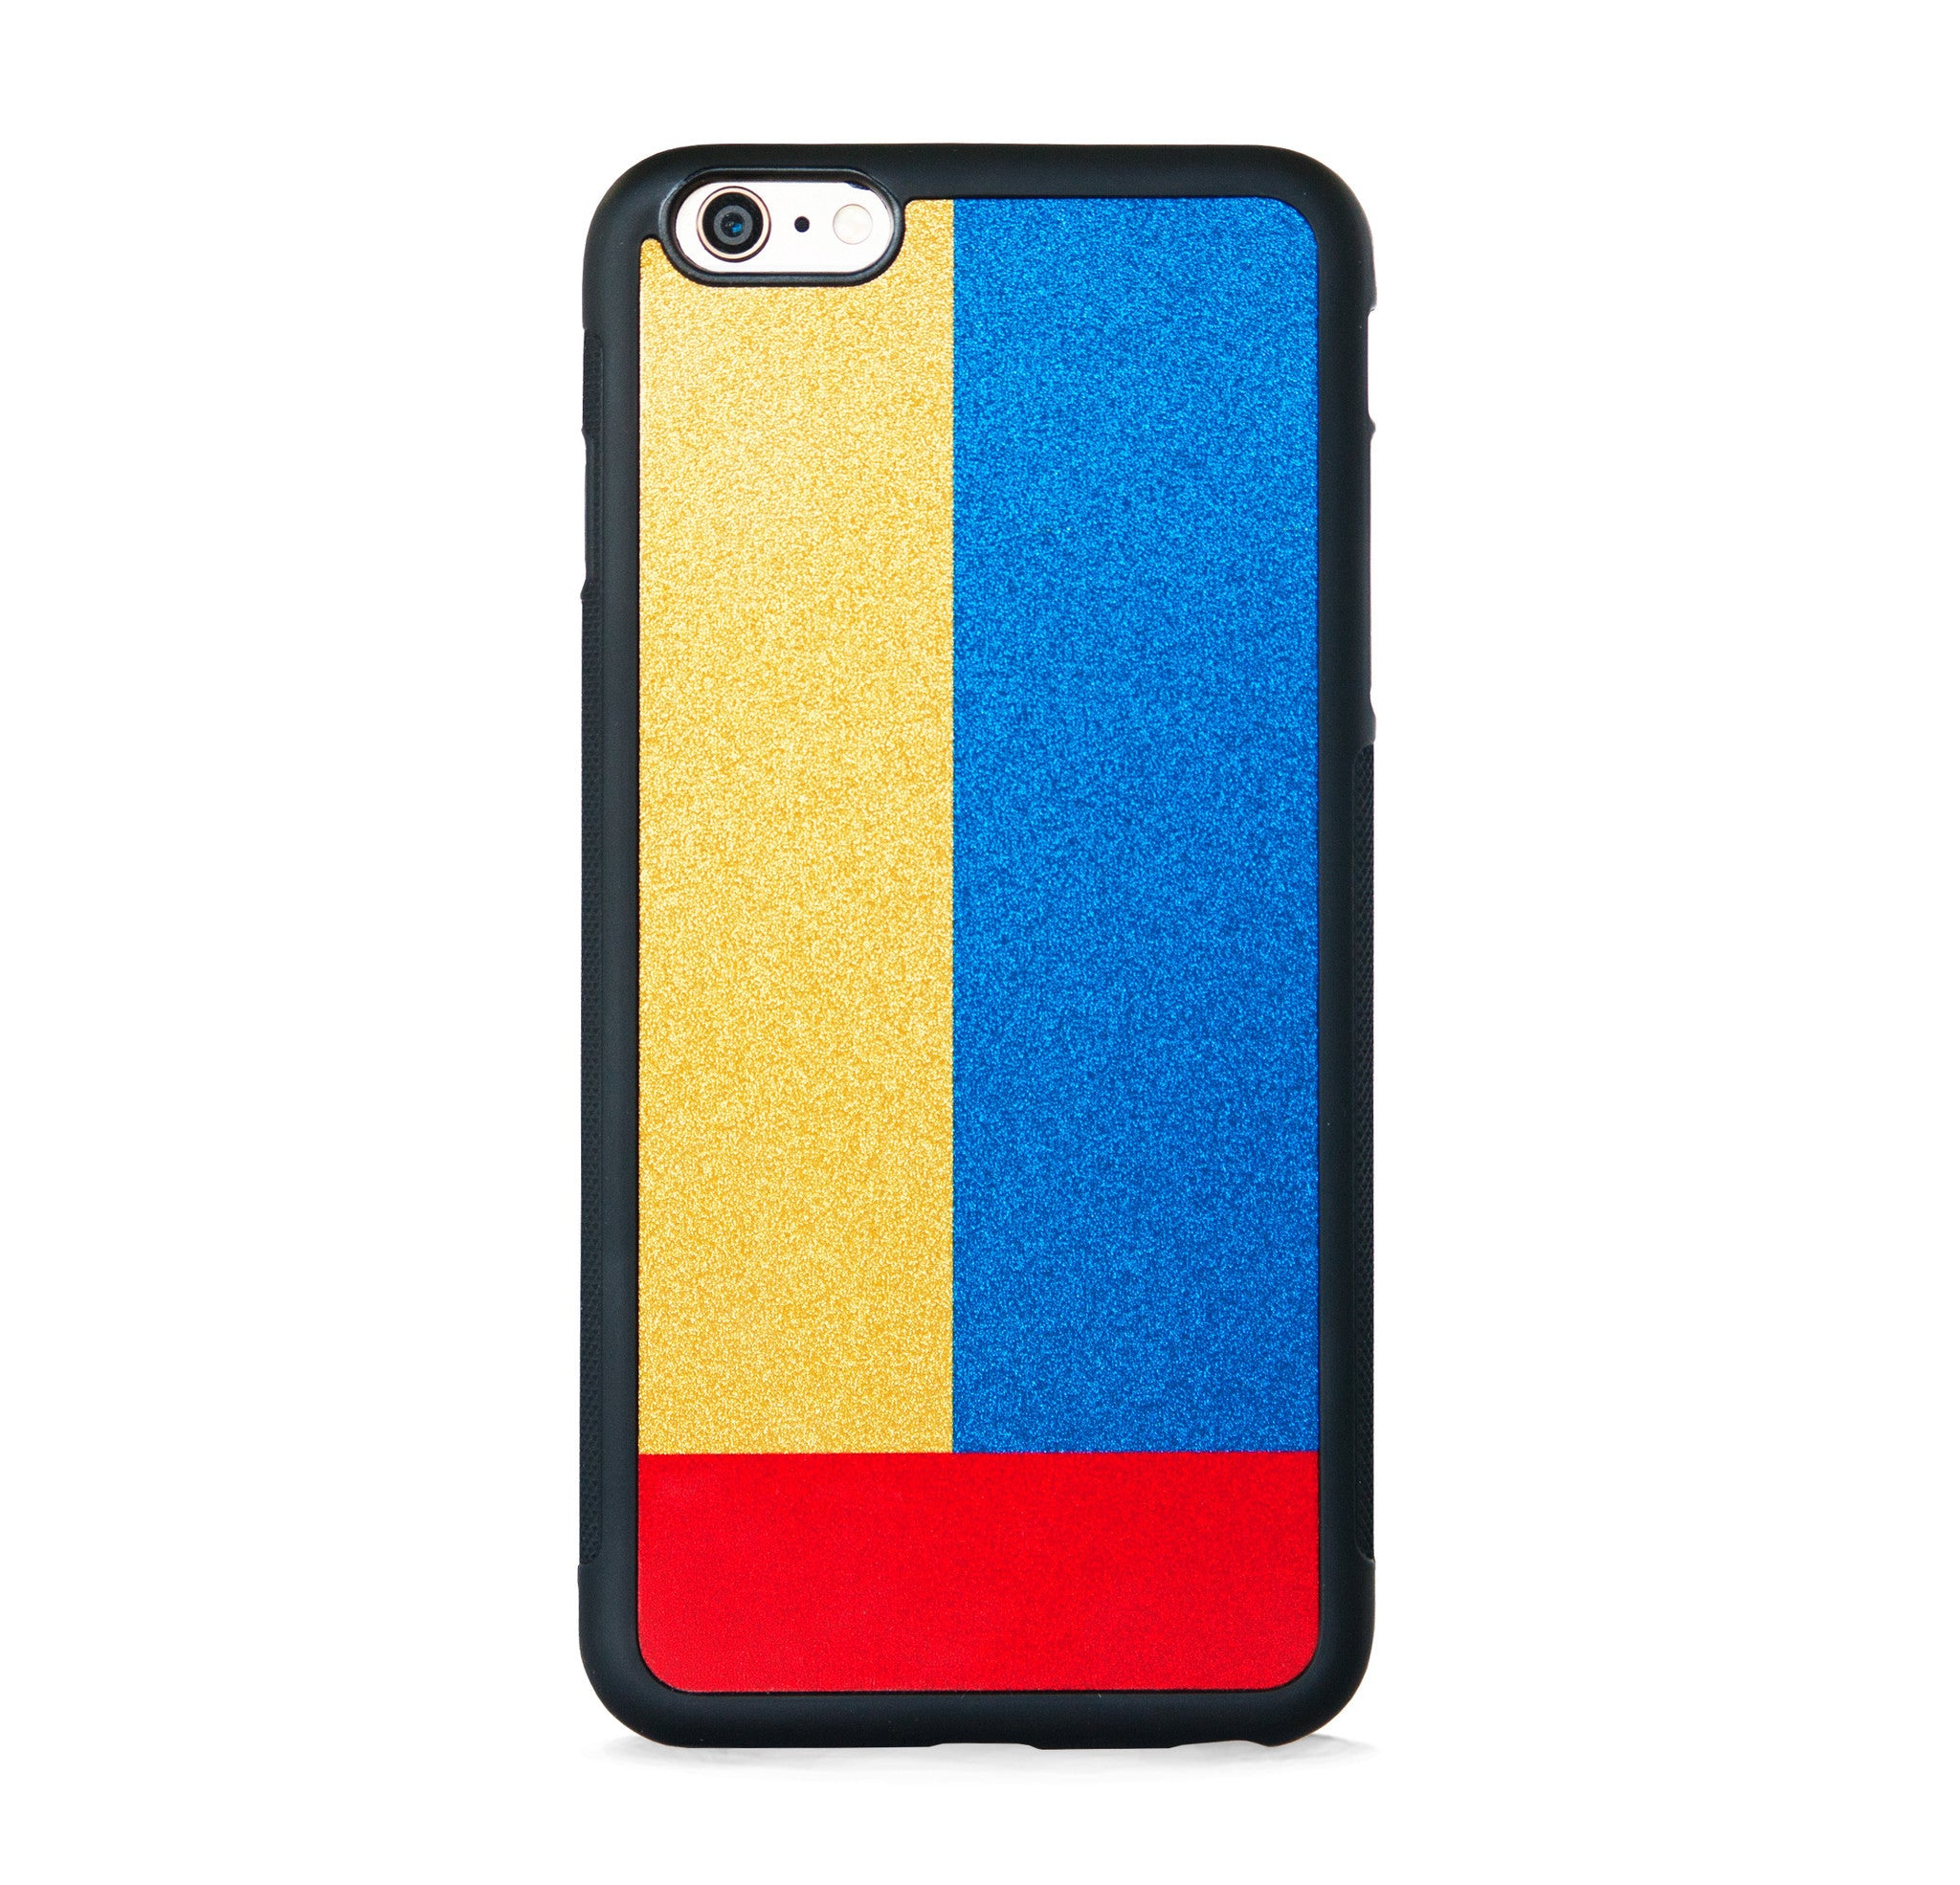 SQUARE COLOR BLOCK ON GOLD FOR IPHONE 6/6s